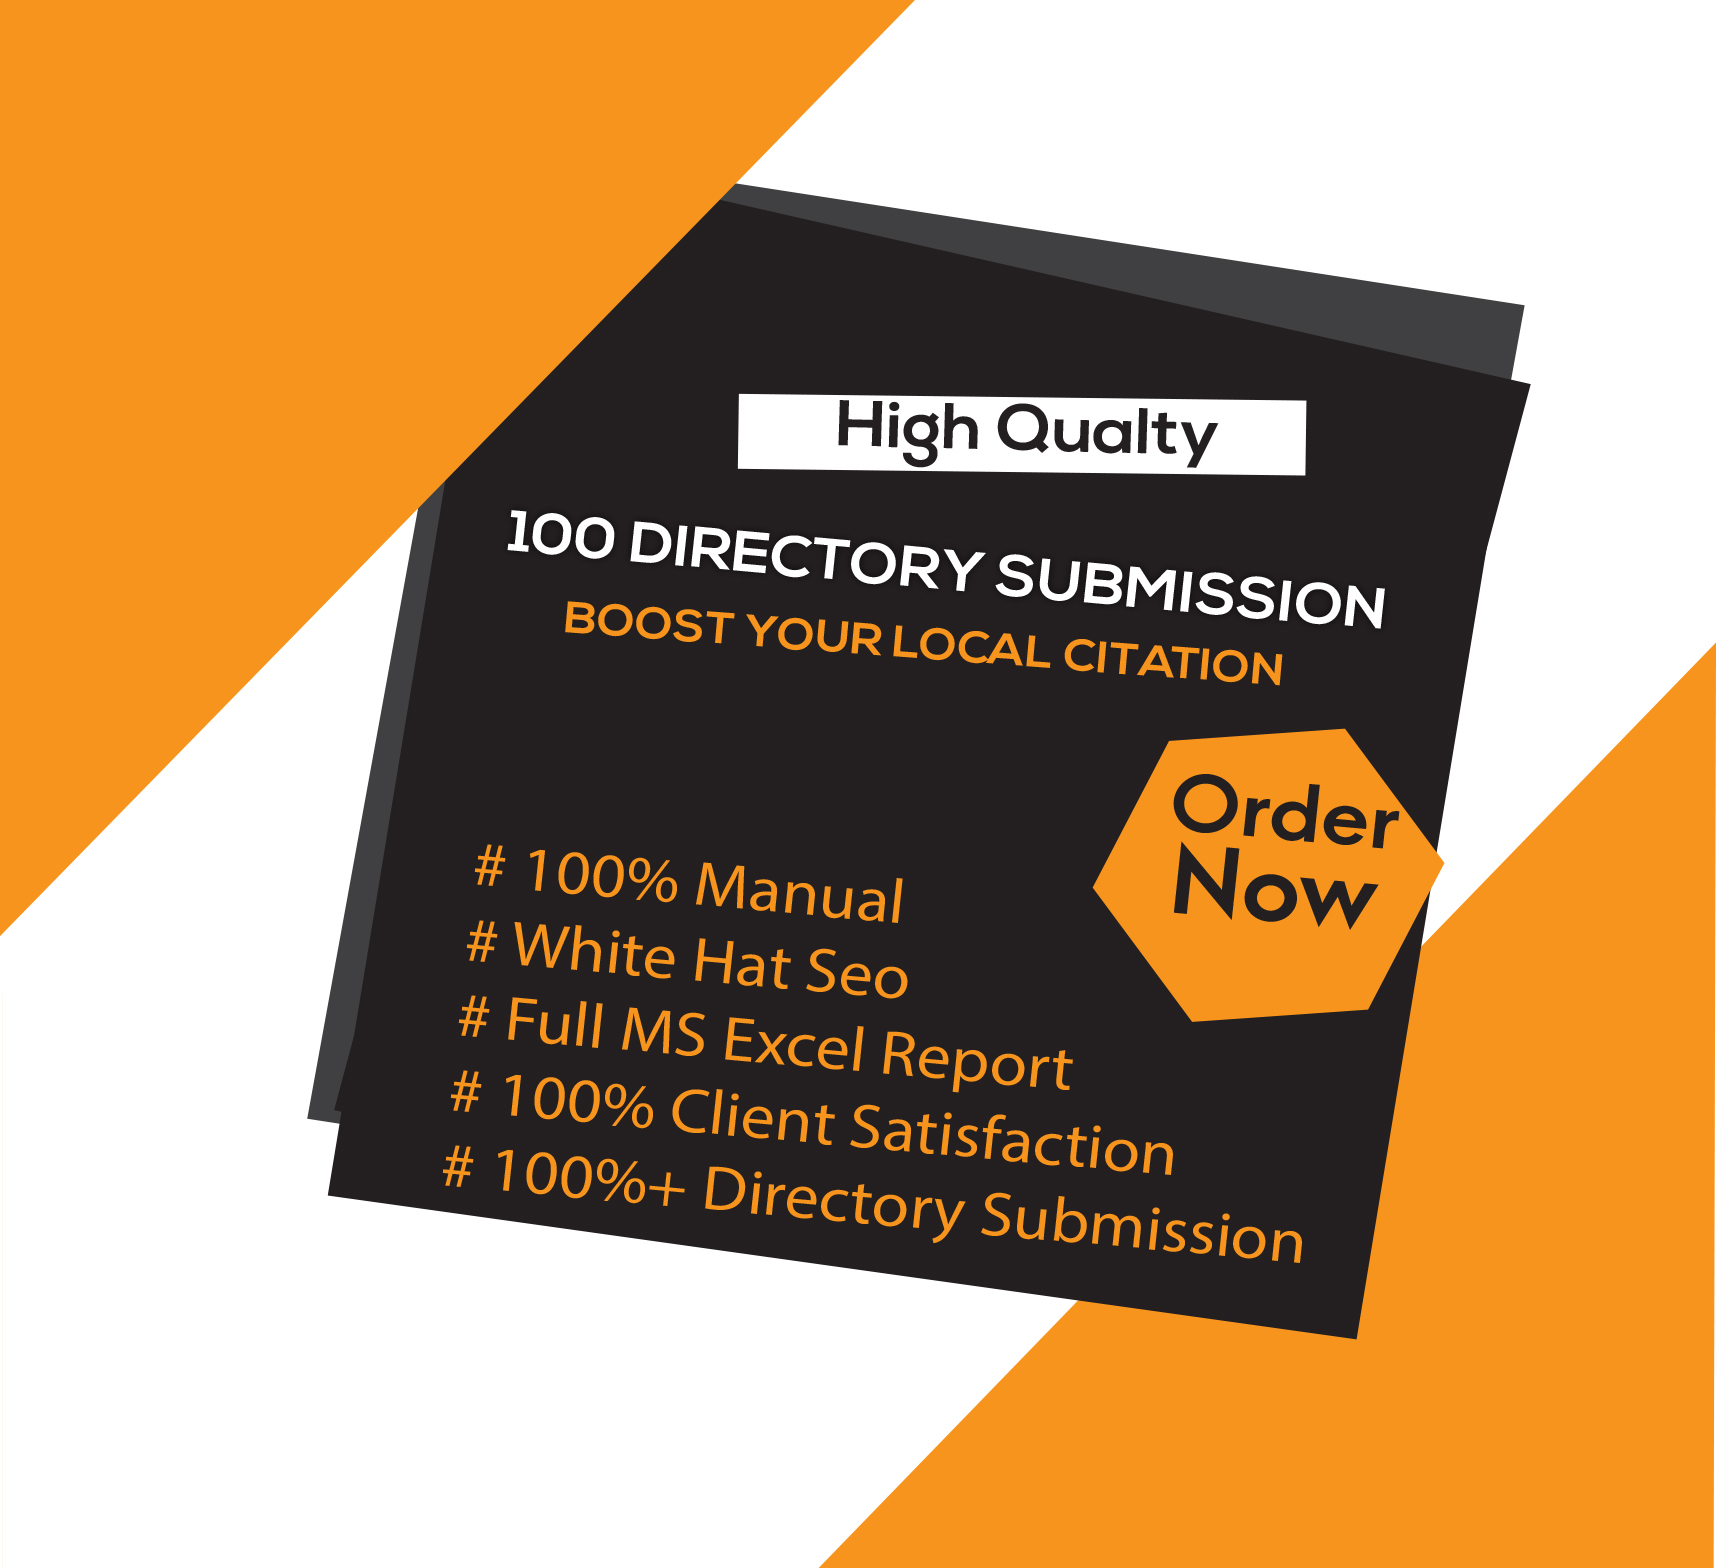 I will manually create 100 high authority directory submission backlinks